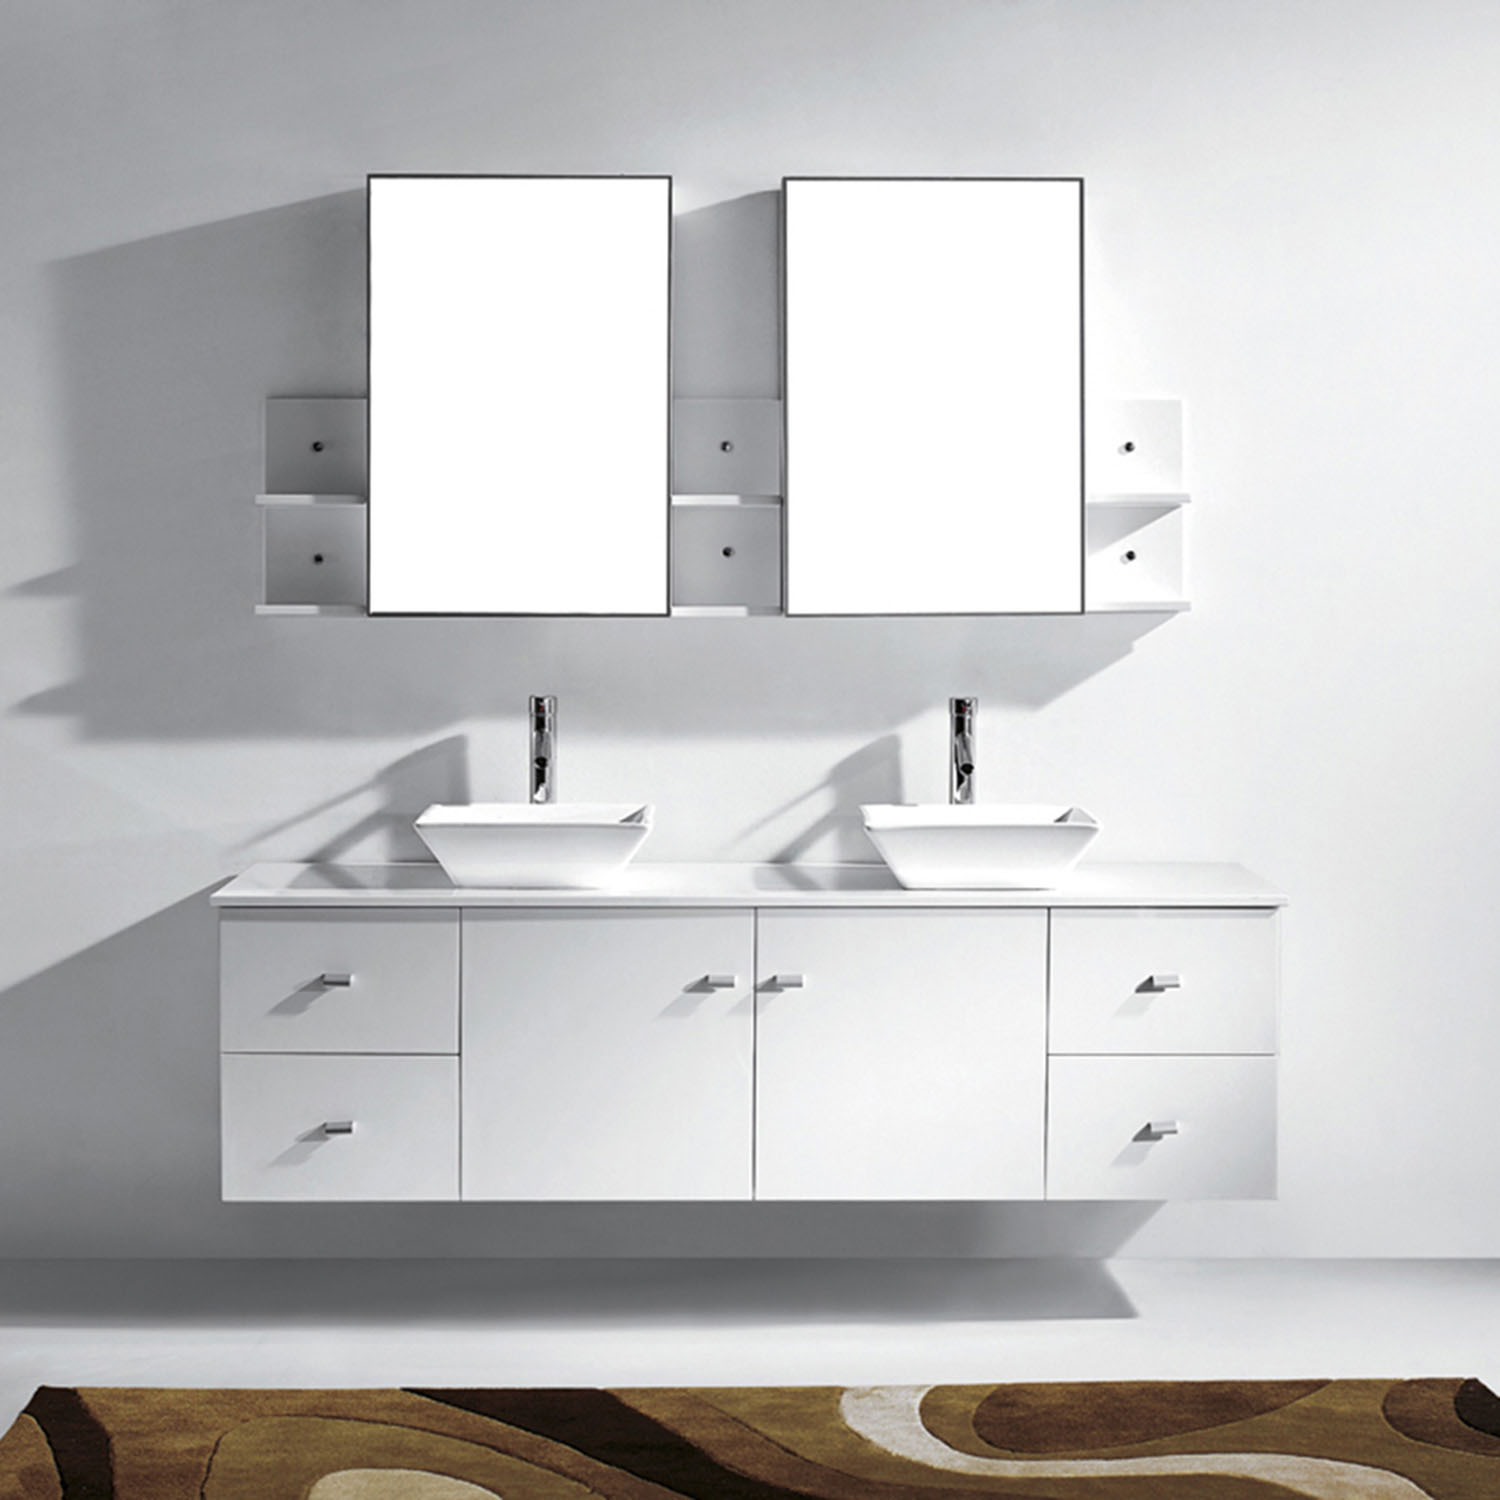 sinks double for costco elegant depot beautiful menards tops mission decoration sink ideas home bathrooms hills bath black and inch vanity bathroom furniture size charleston with gray top sin floating cabinets design madeli vanities by full lowes long of white diy